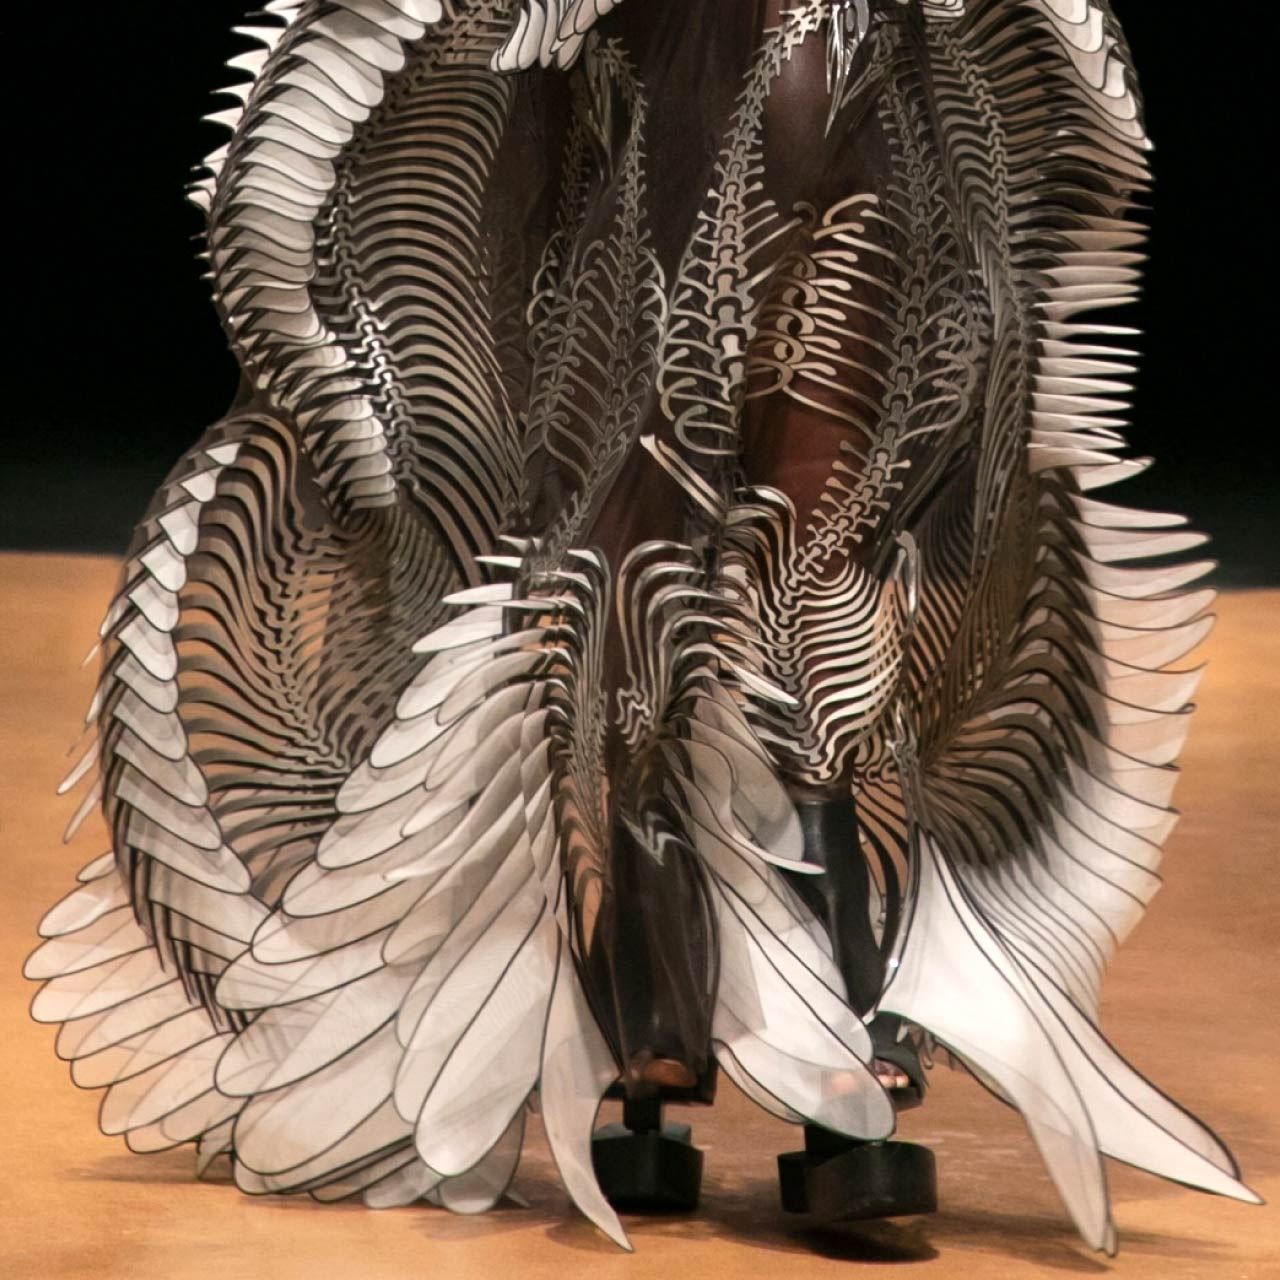 Contemporary Couture Techniques at Iris van Herpen | The Cutting Class. Detail of 'Labrynthine' technique with pearlescent skeletal design.